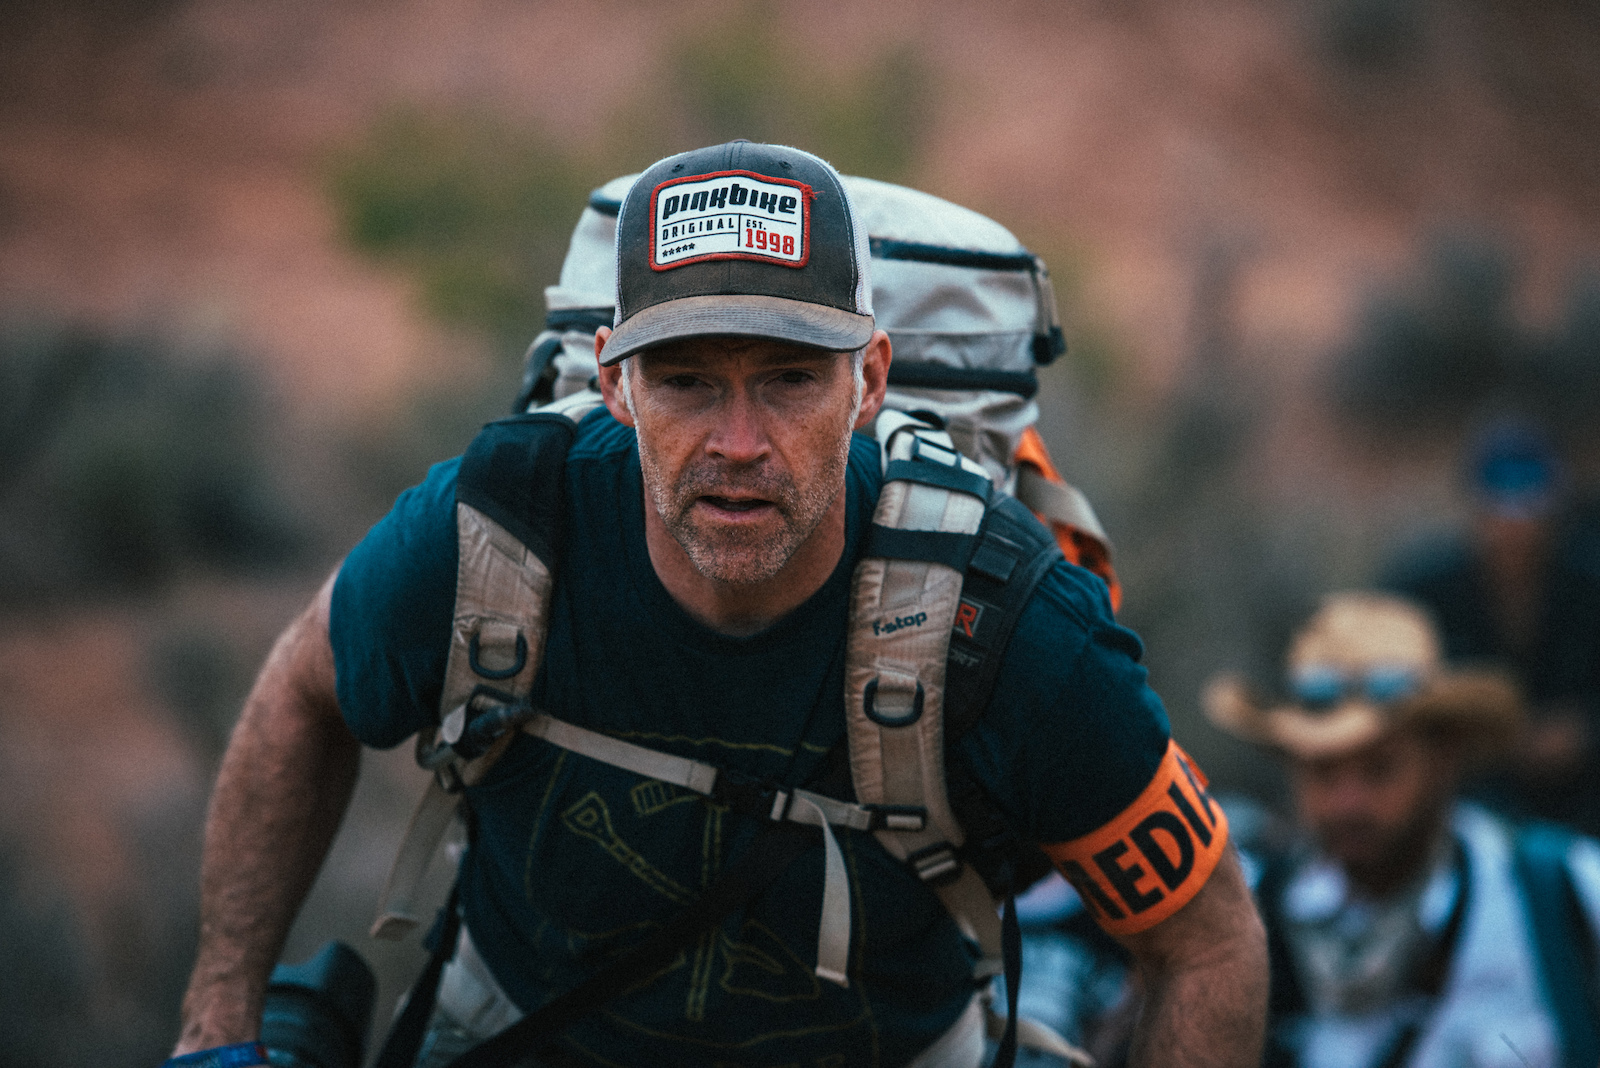 Colin Meagher hiking up the course for the 2015 Redbull Rampage.